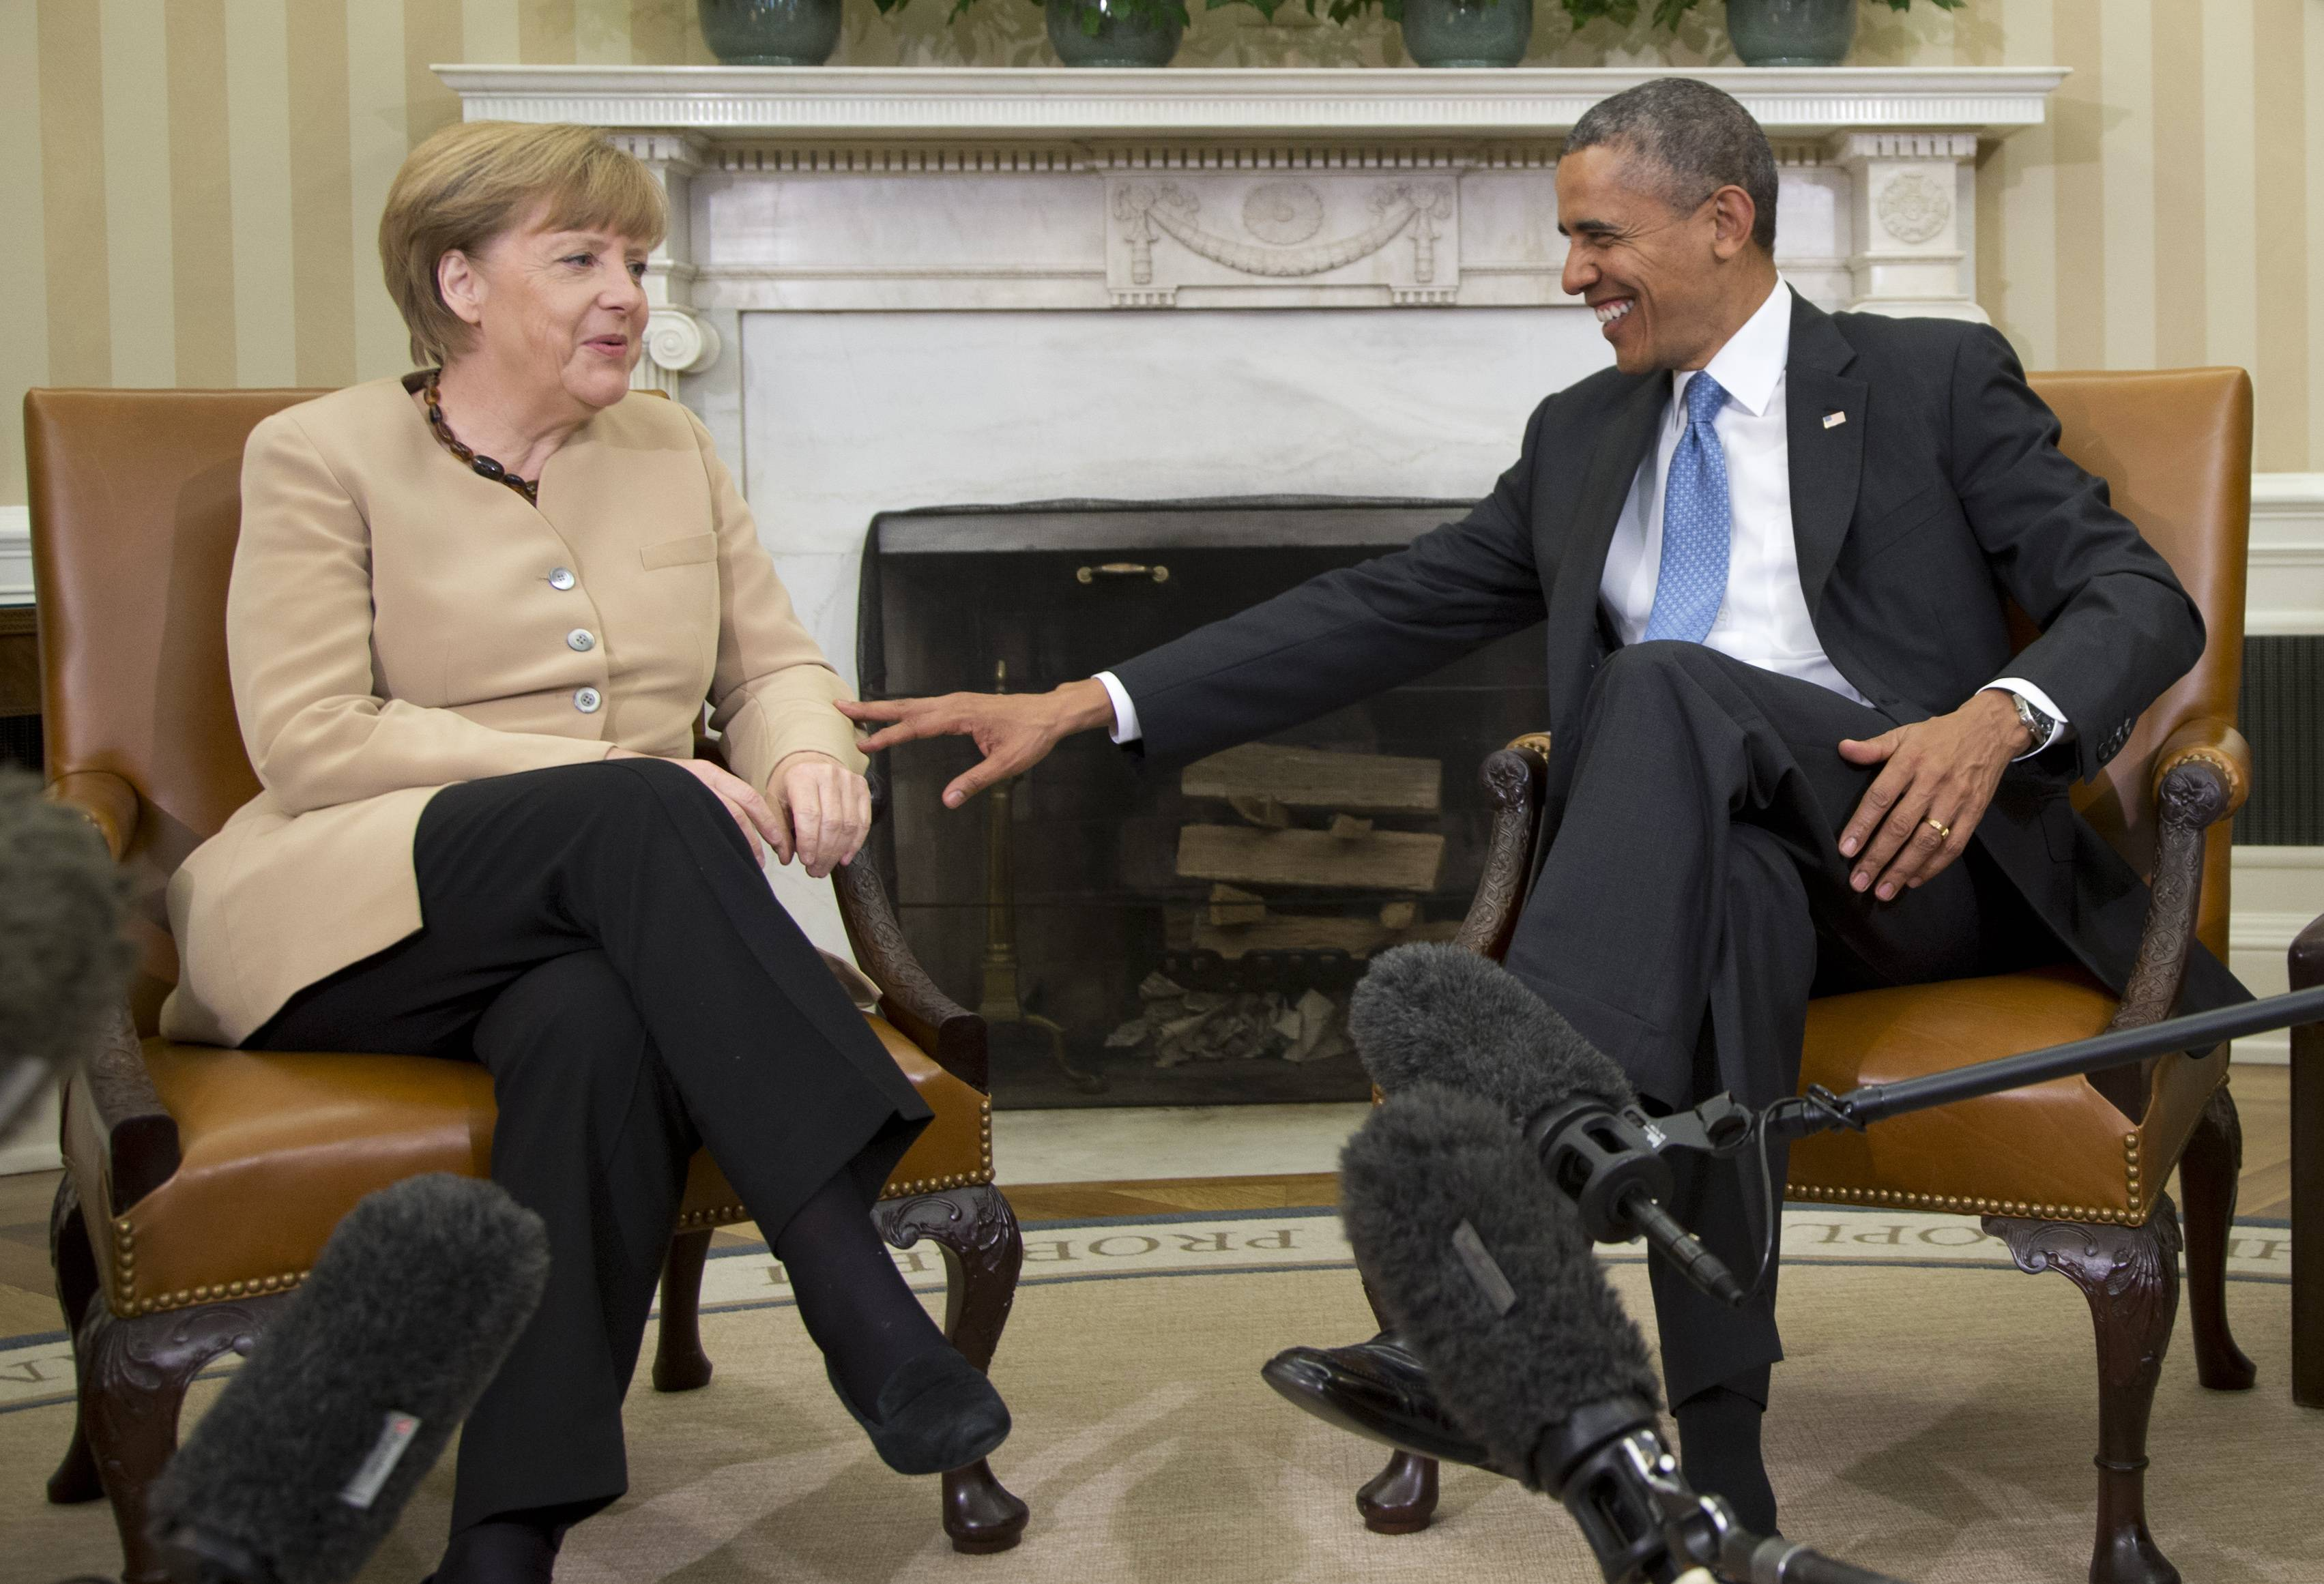 President Barack Obama meets with German Chancellor Angela Merkel in the Oval Office of the White House in Washington, Friday, May 2, 2014.